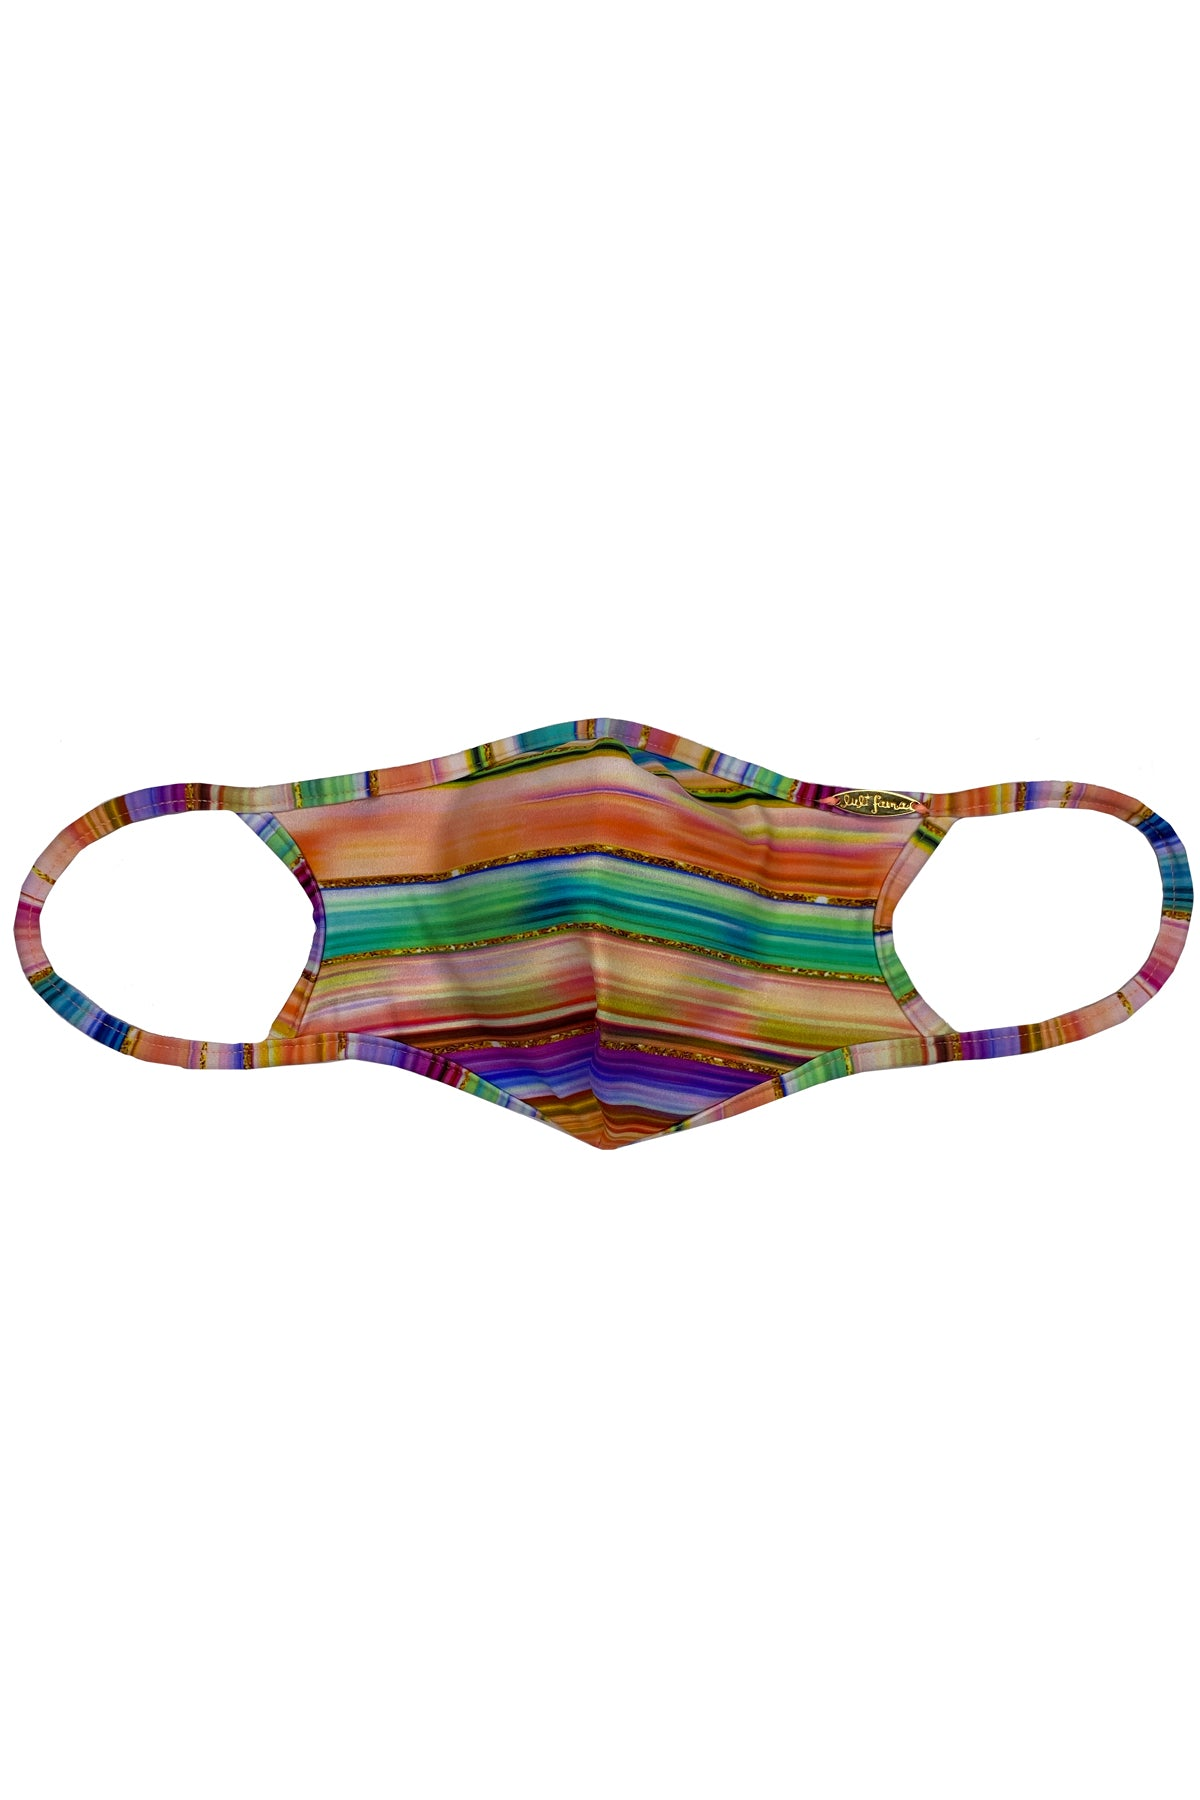 HEAT WAVES - Mask • Multicolor